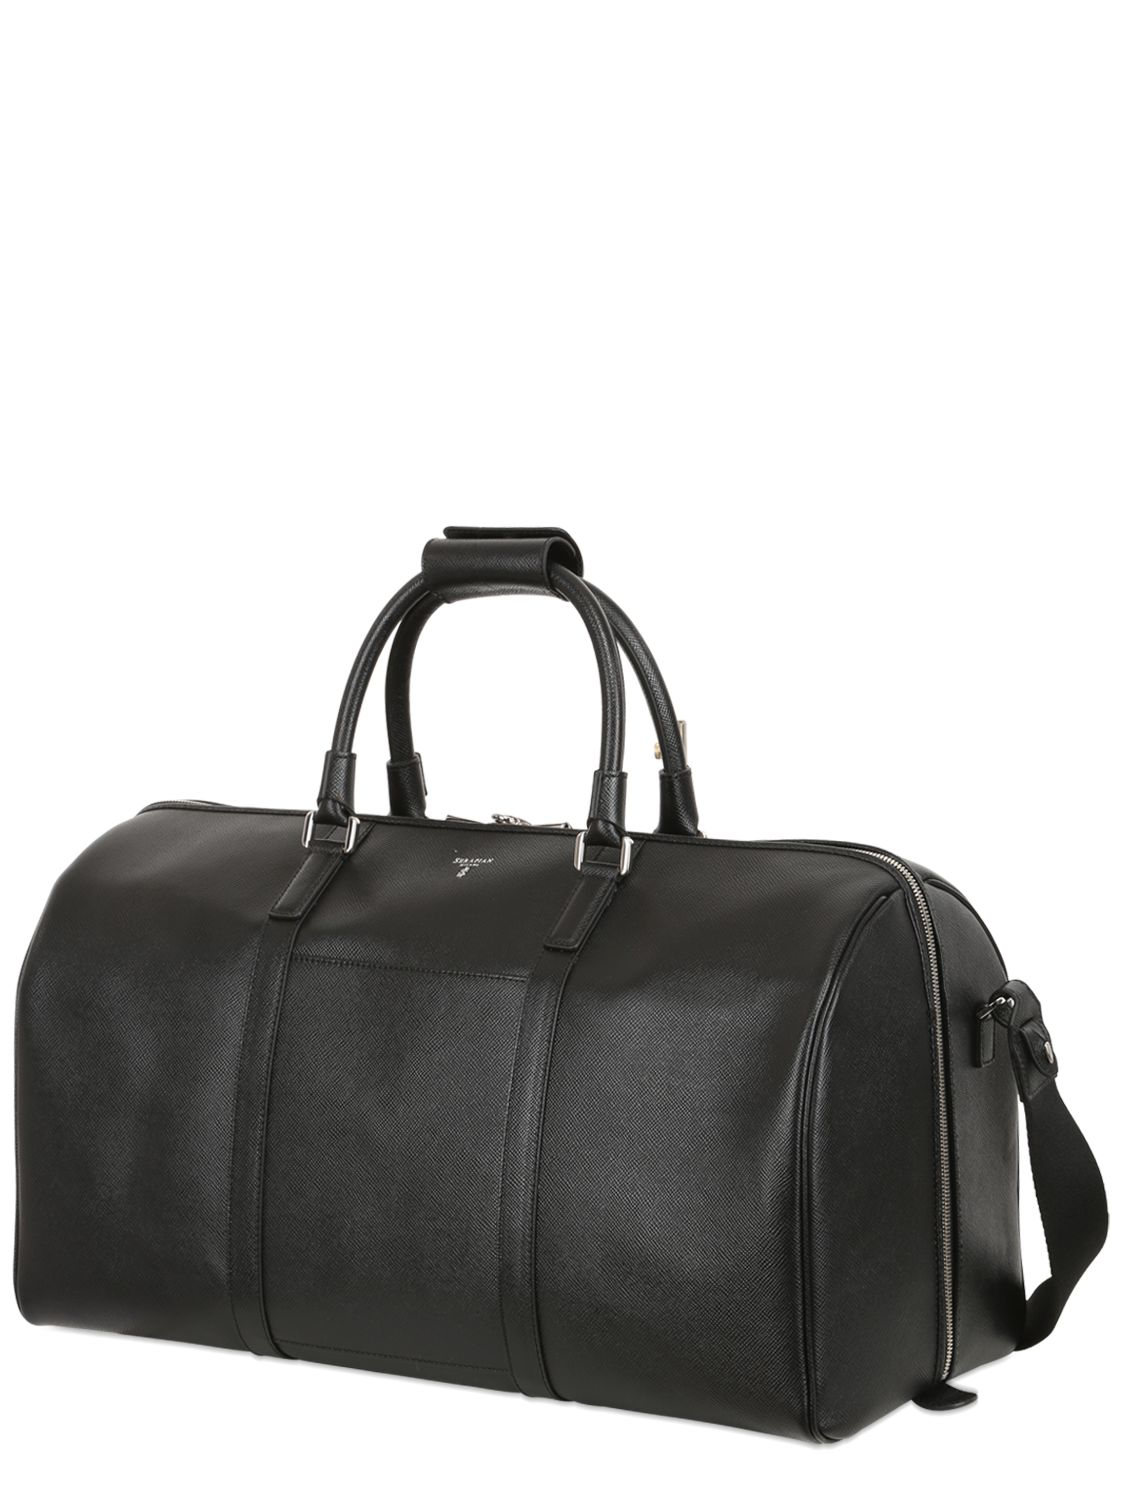 Lyst Serapian Saffiano Leather Duffle Bag In Black For Men